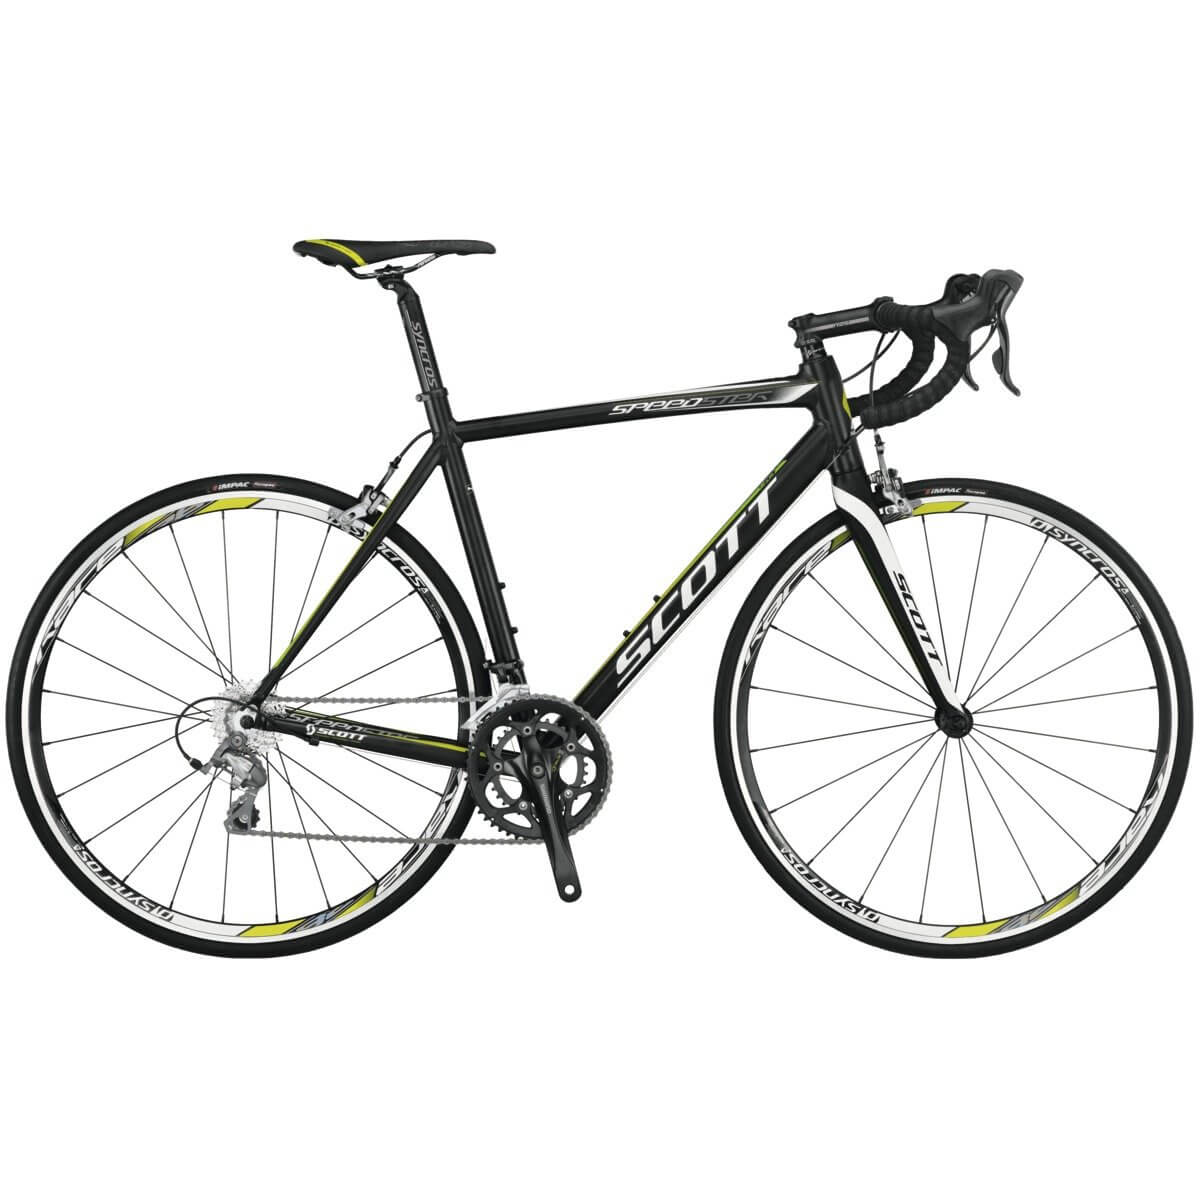 Scott Speedster 40 2013. Scott Road Bikes at Cycle Division